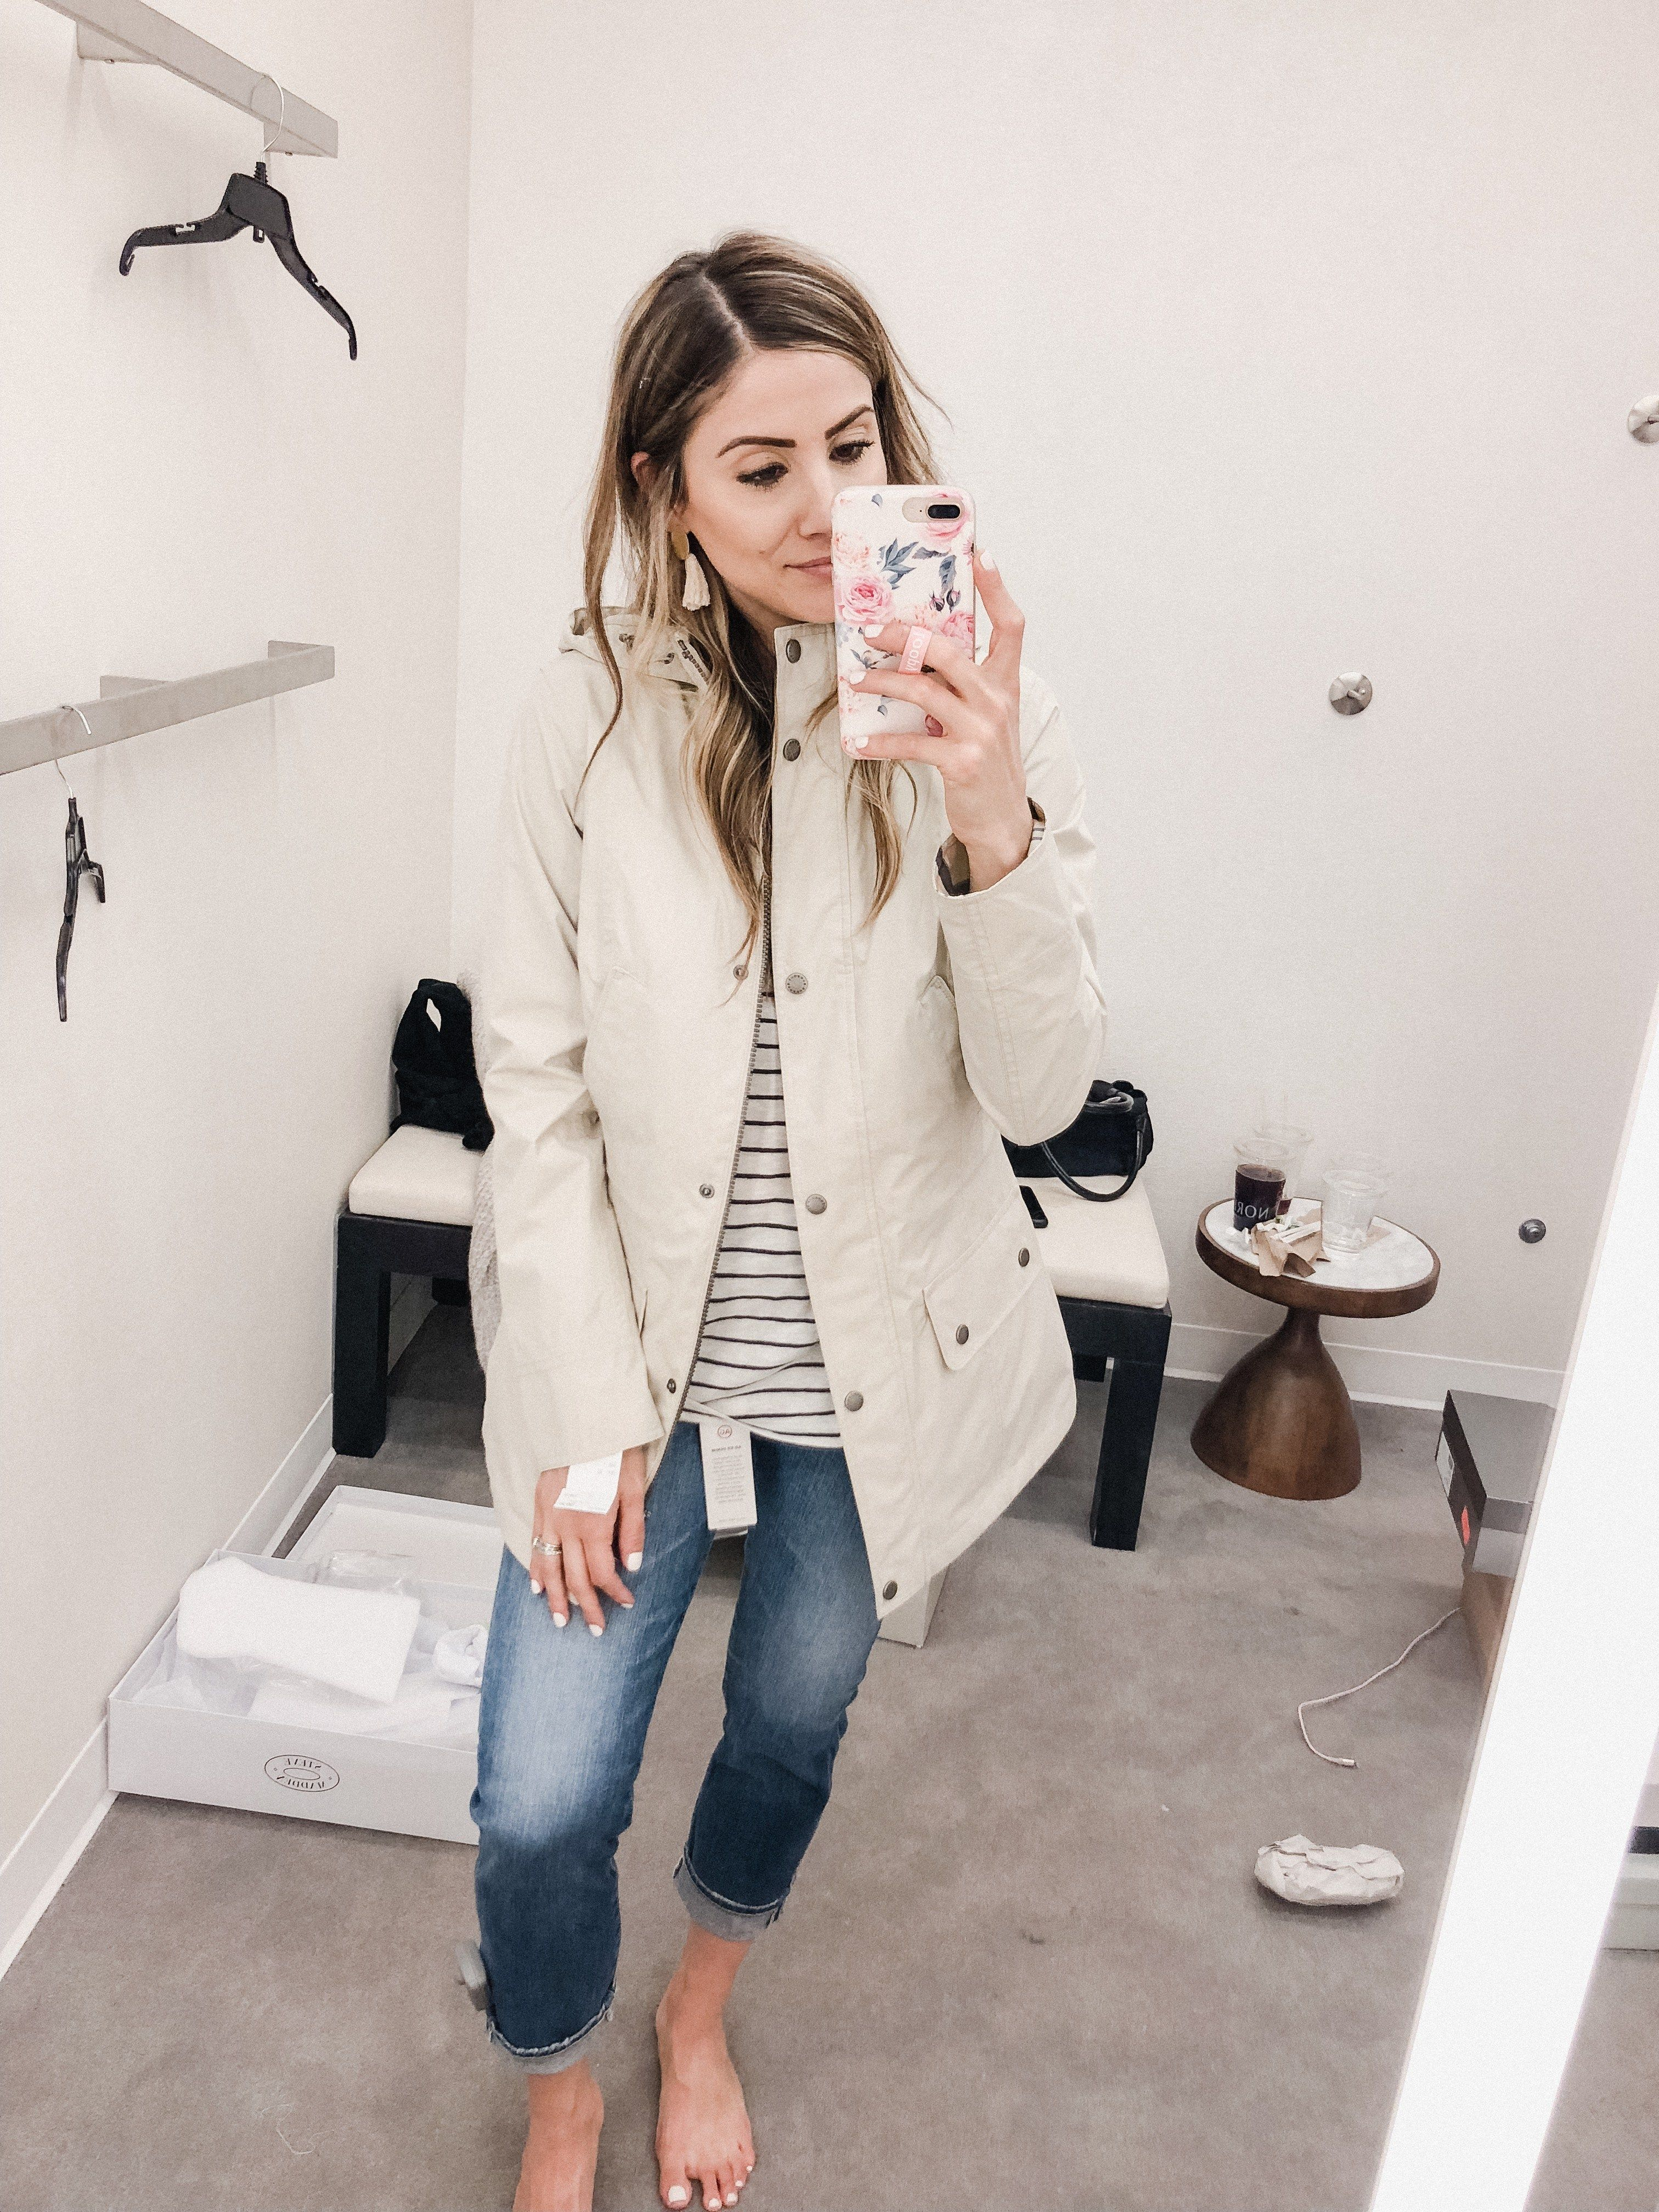 f91457f6536 Life and style blogger Lauren McBride shares her fitting room try-on  session for the Nordstrom Anniversary Sale 2018.